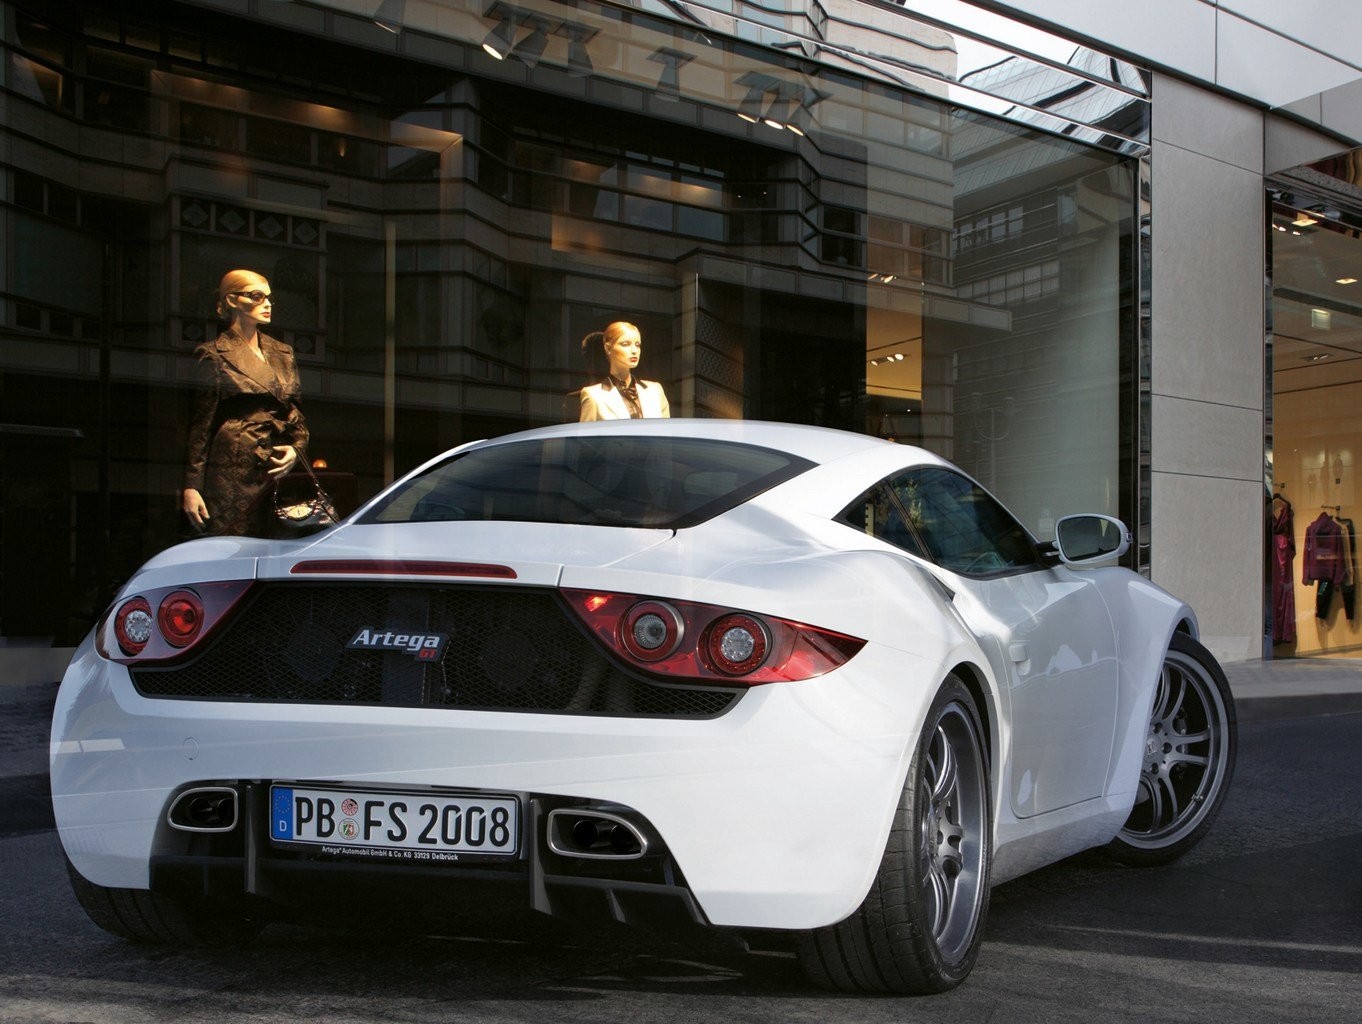 Latest Artega Gt Auto Wallpapers Groenlicht Be Free Download